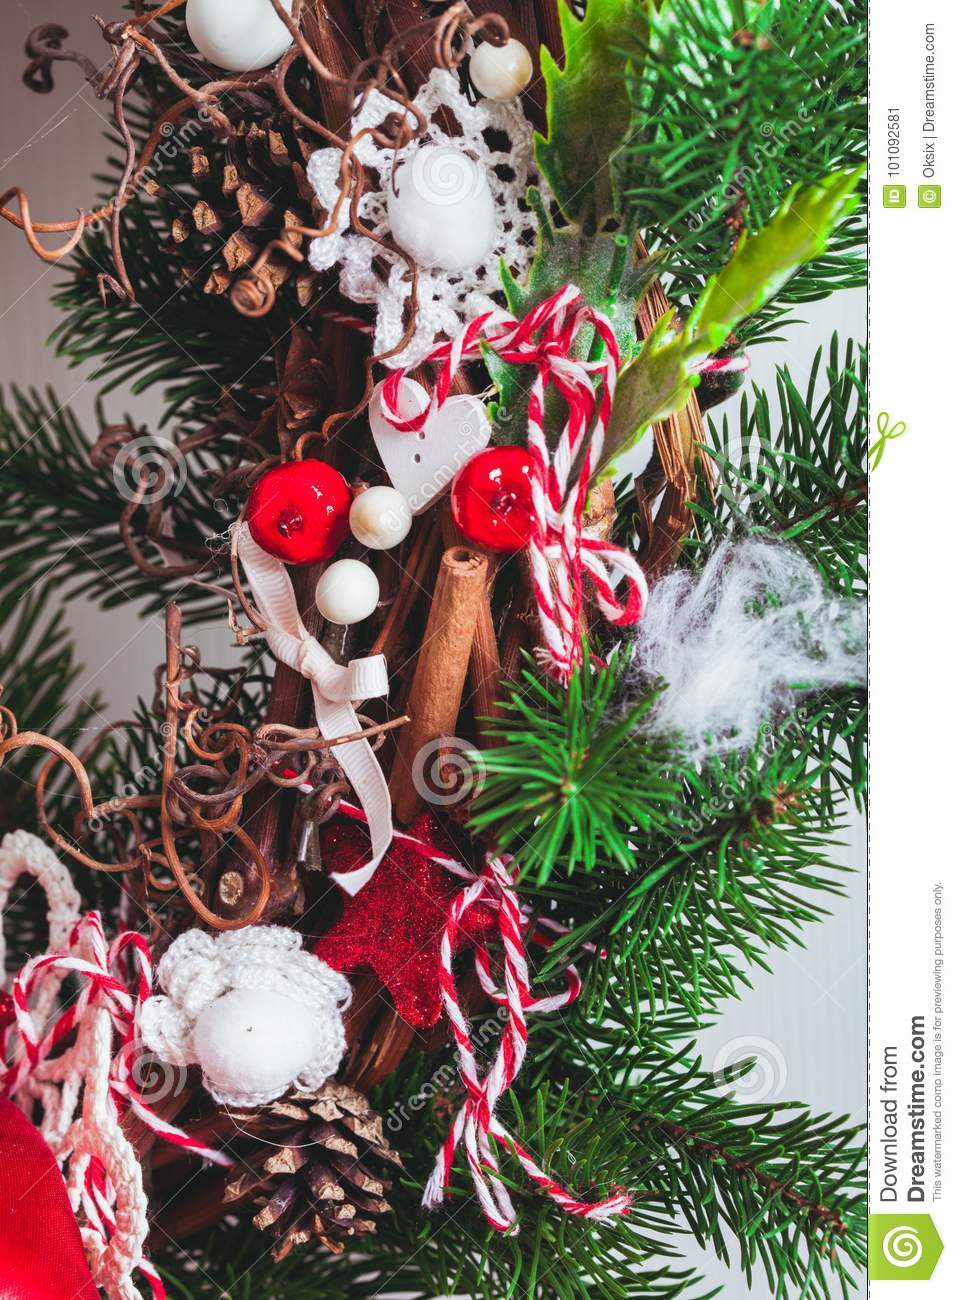 Red And White Christmas Wreath.Red And White Christmas Wreath Stock Image Image Of Ornate